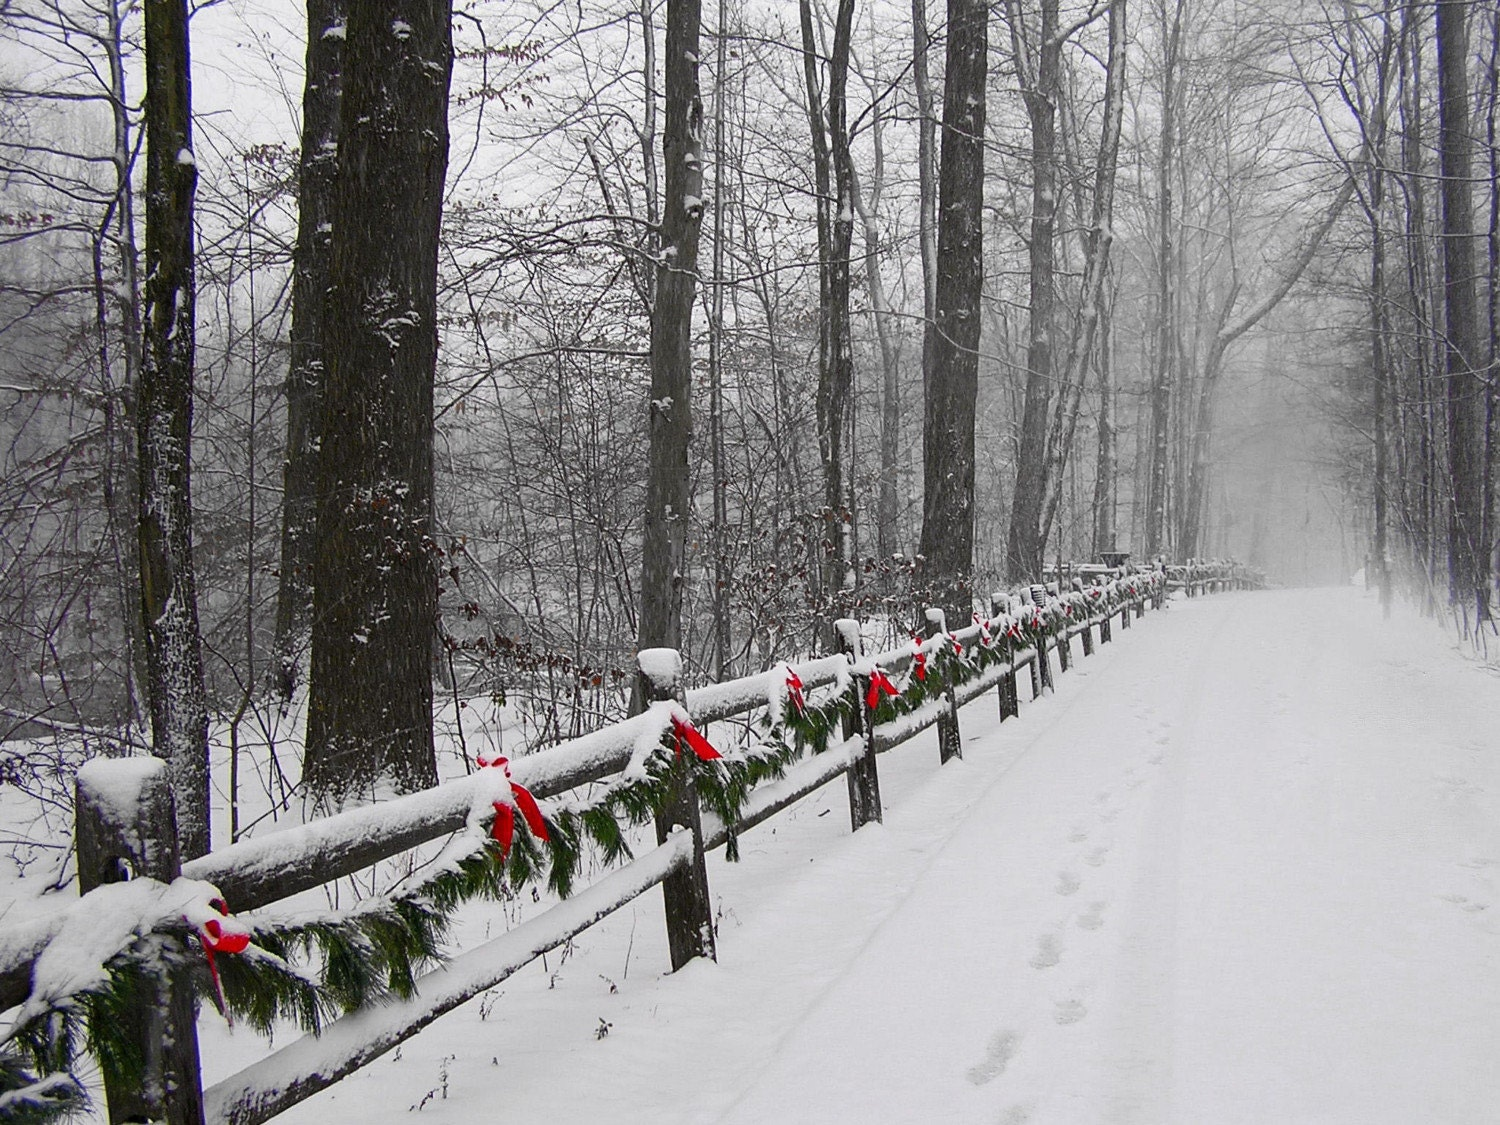 Deck the Trail 8x10 Christmas Winter Snow Scene Photograph